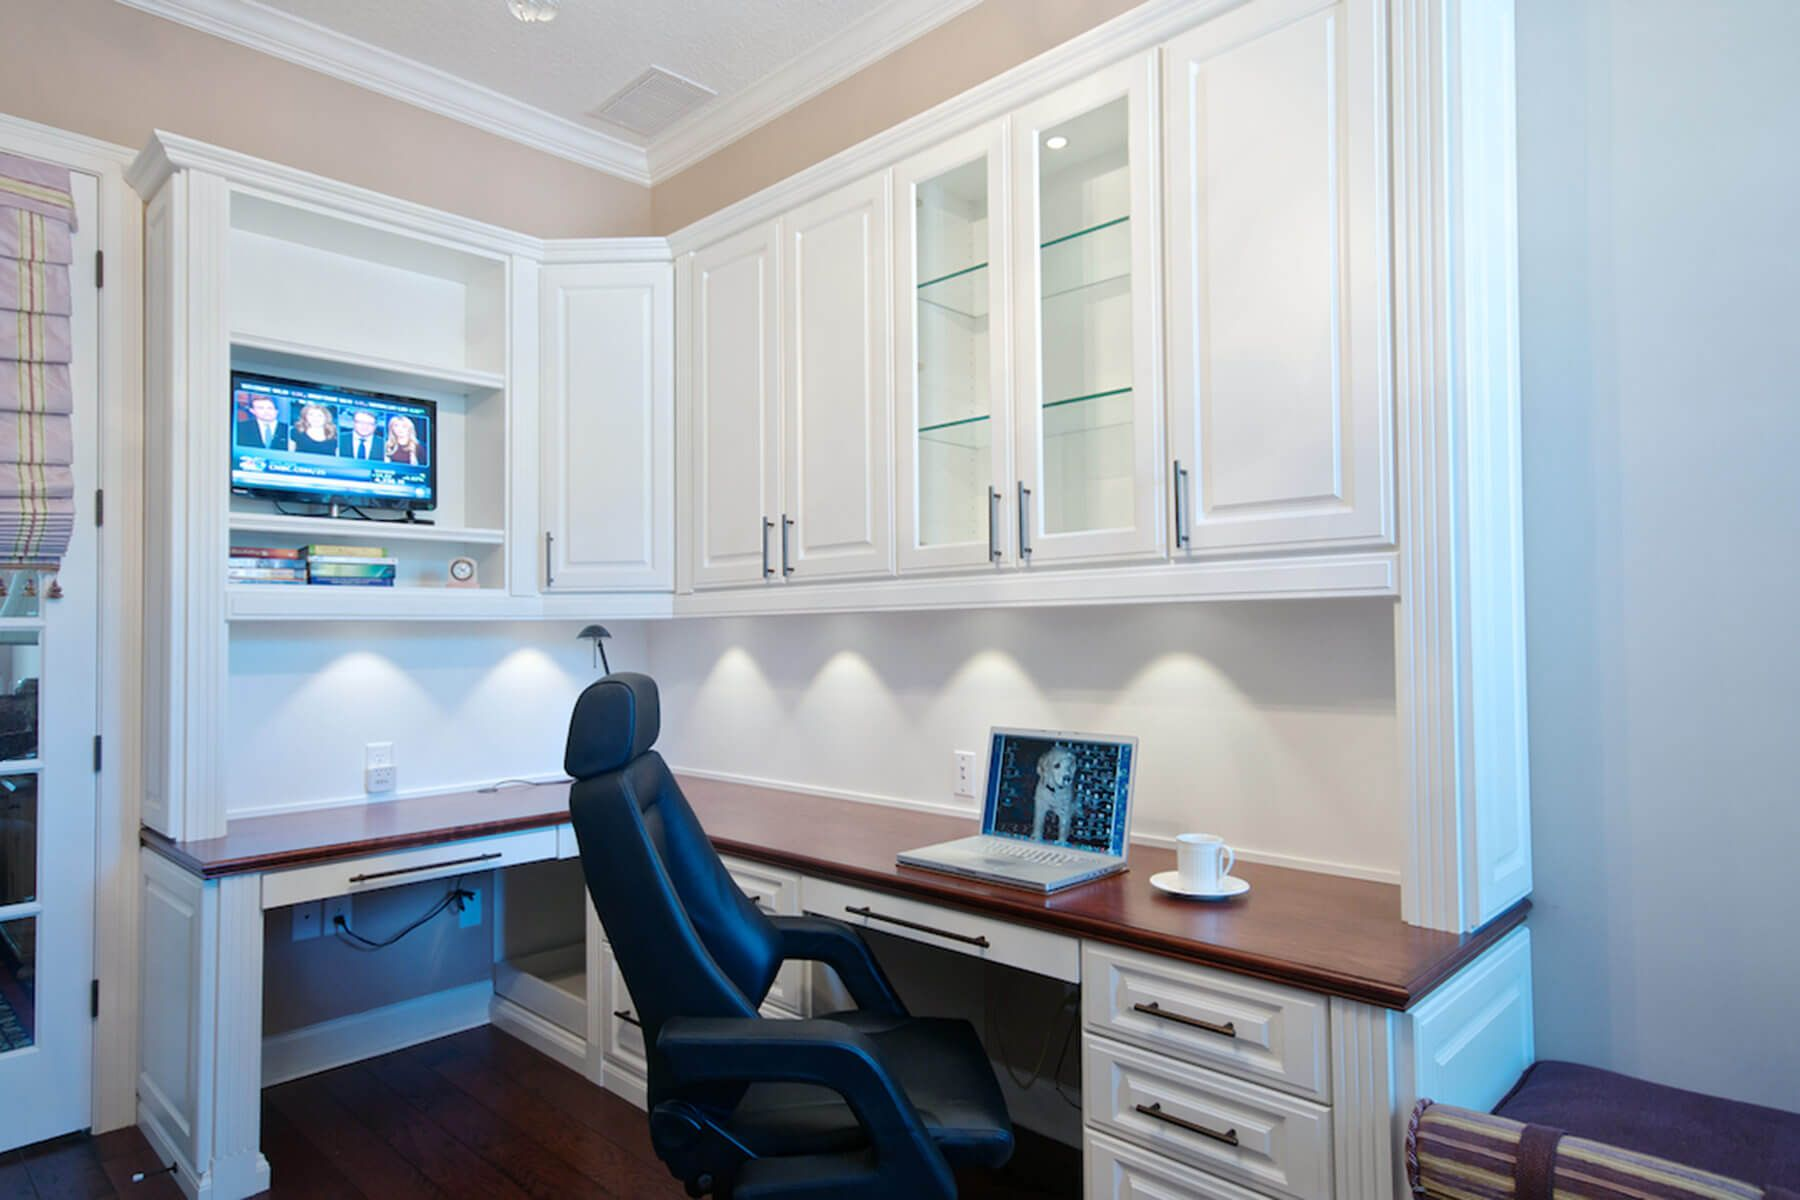 Attrayant 350 Home Office Ideas For 2018 (Pictures). White Built In Desk And  Cupboards Above